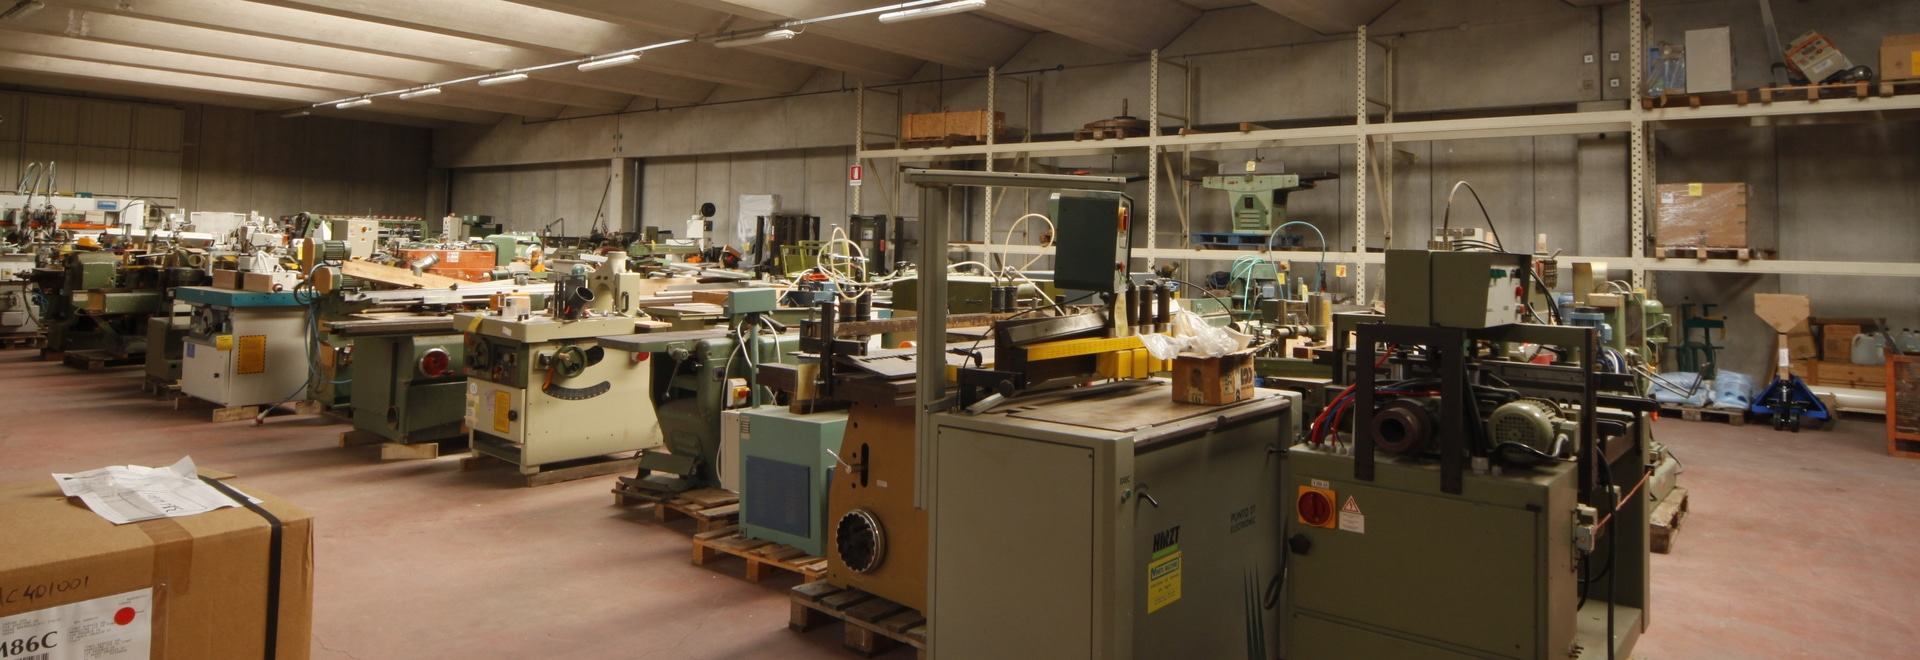 New And Second Hand Woodworking Machines Via Nazionale 87 33048